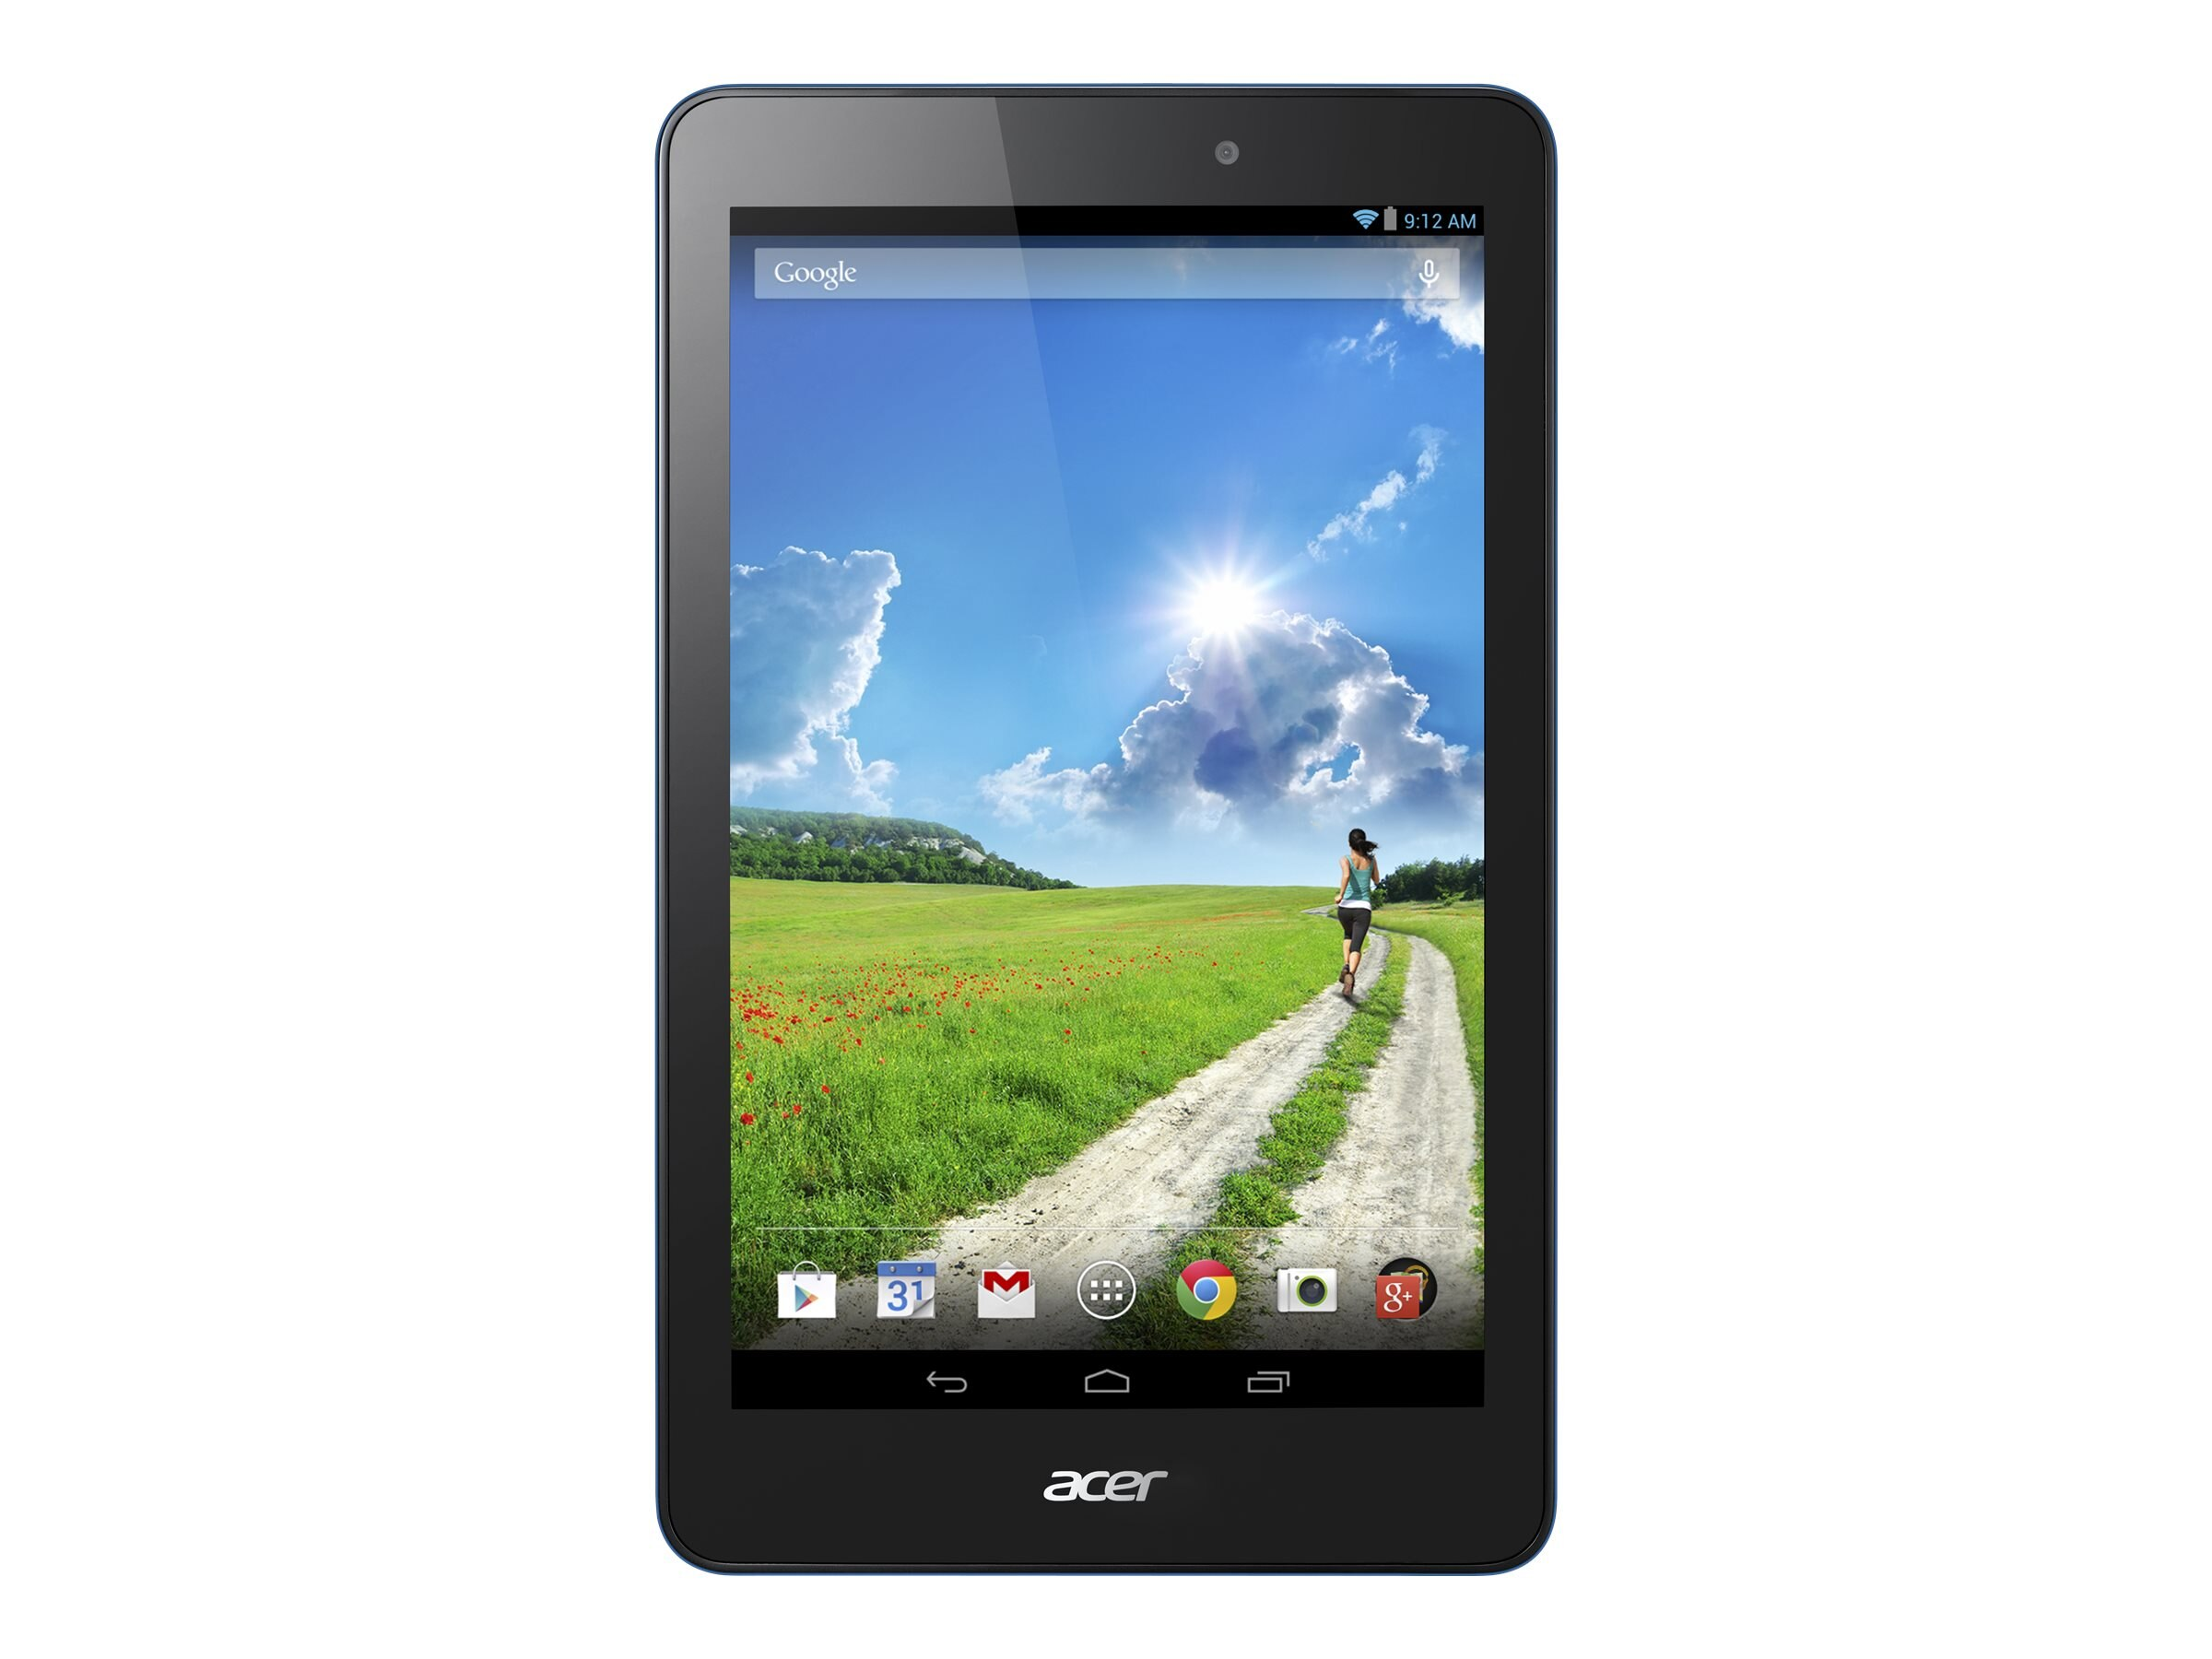 Acer Iconia B1-810-17FE 1.33GHz processor Android 4.4 (KitKat), NT.L7NAA.001, 31364261, Tablets